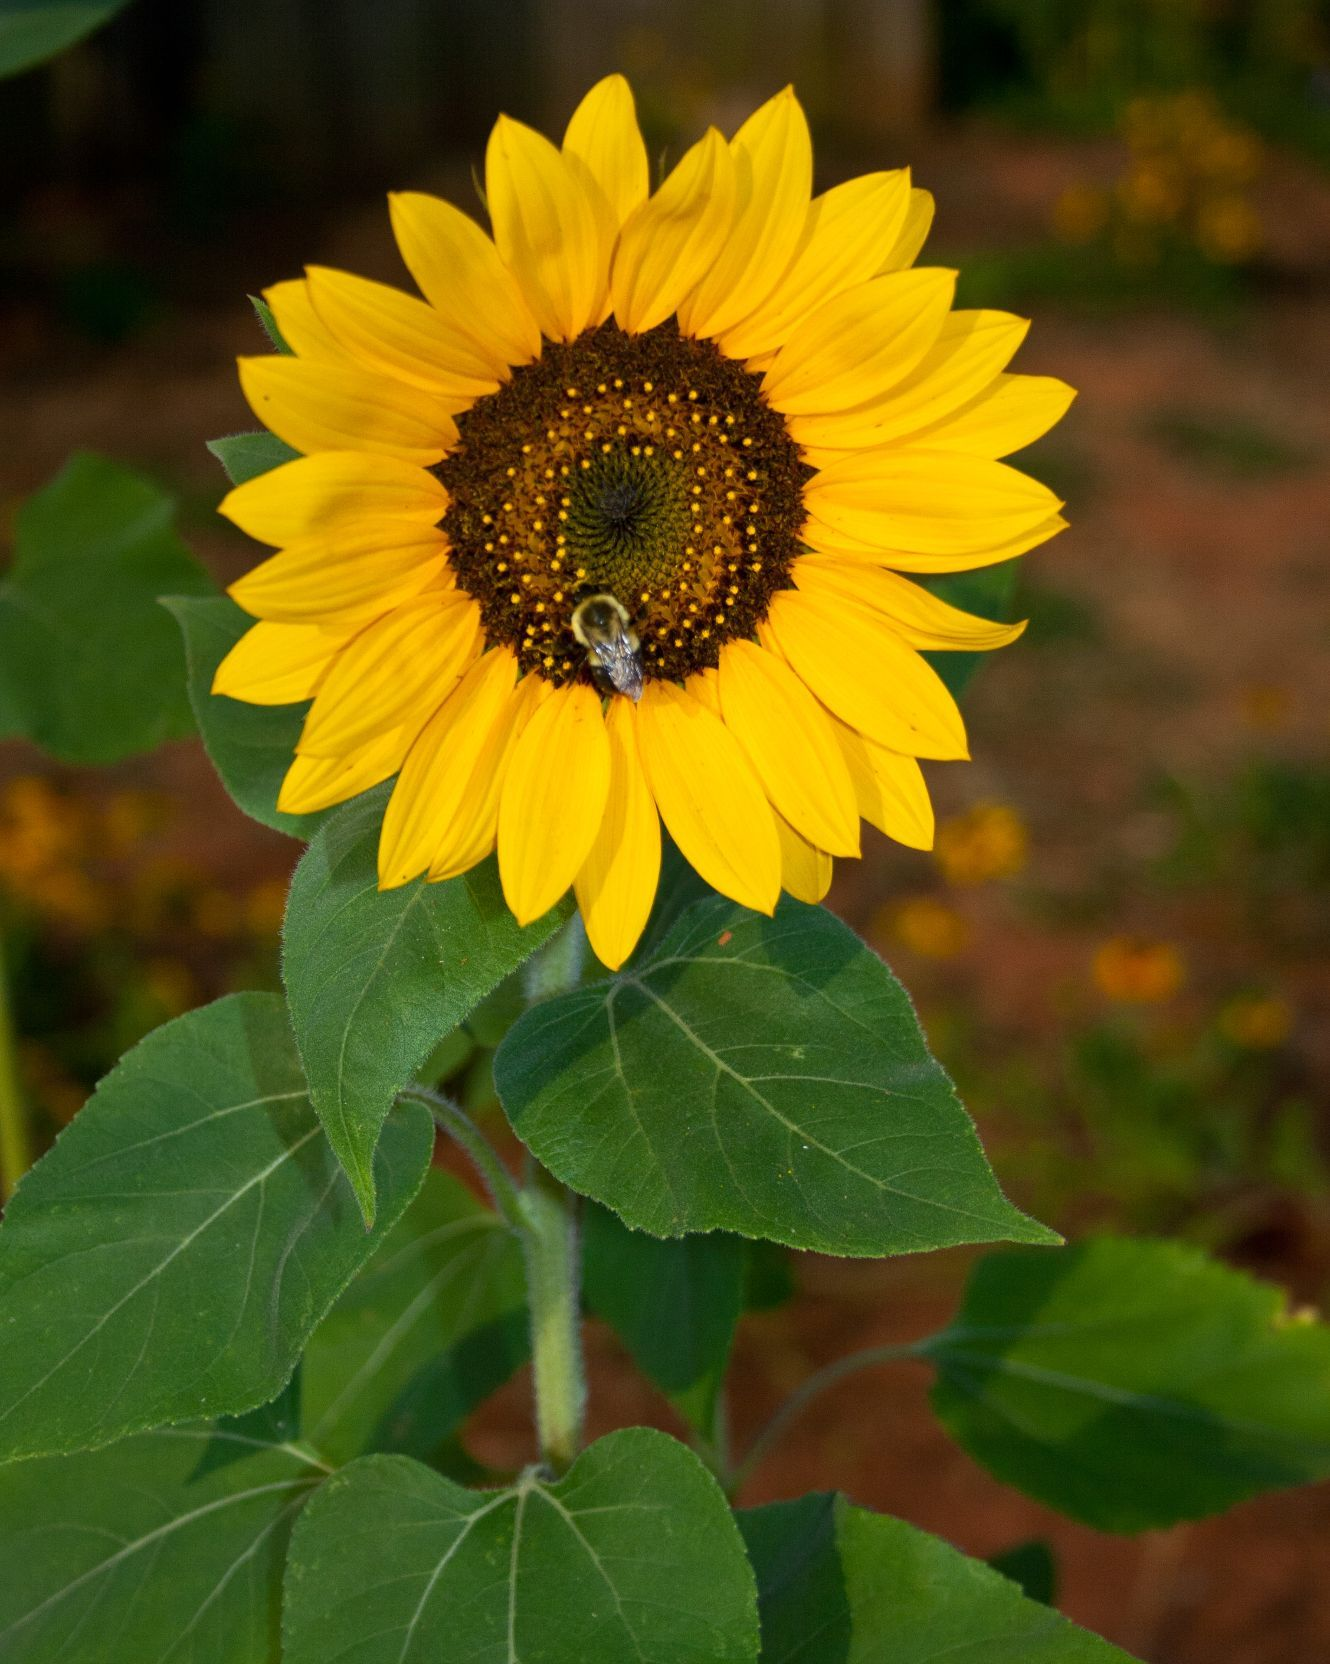 Another Single Sunflower October Flowers Sunflower Seeds Flower Pictures